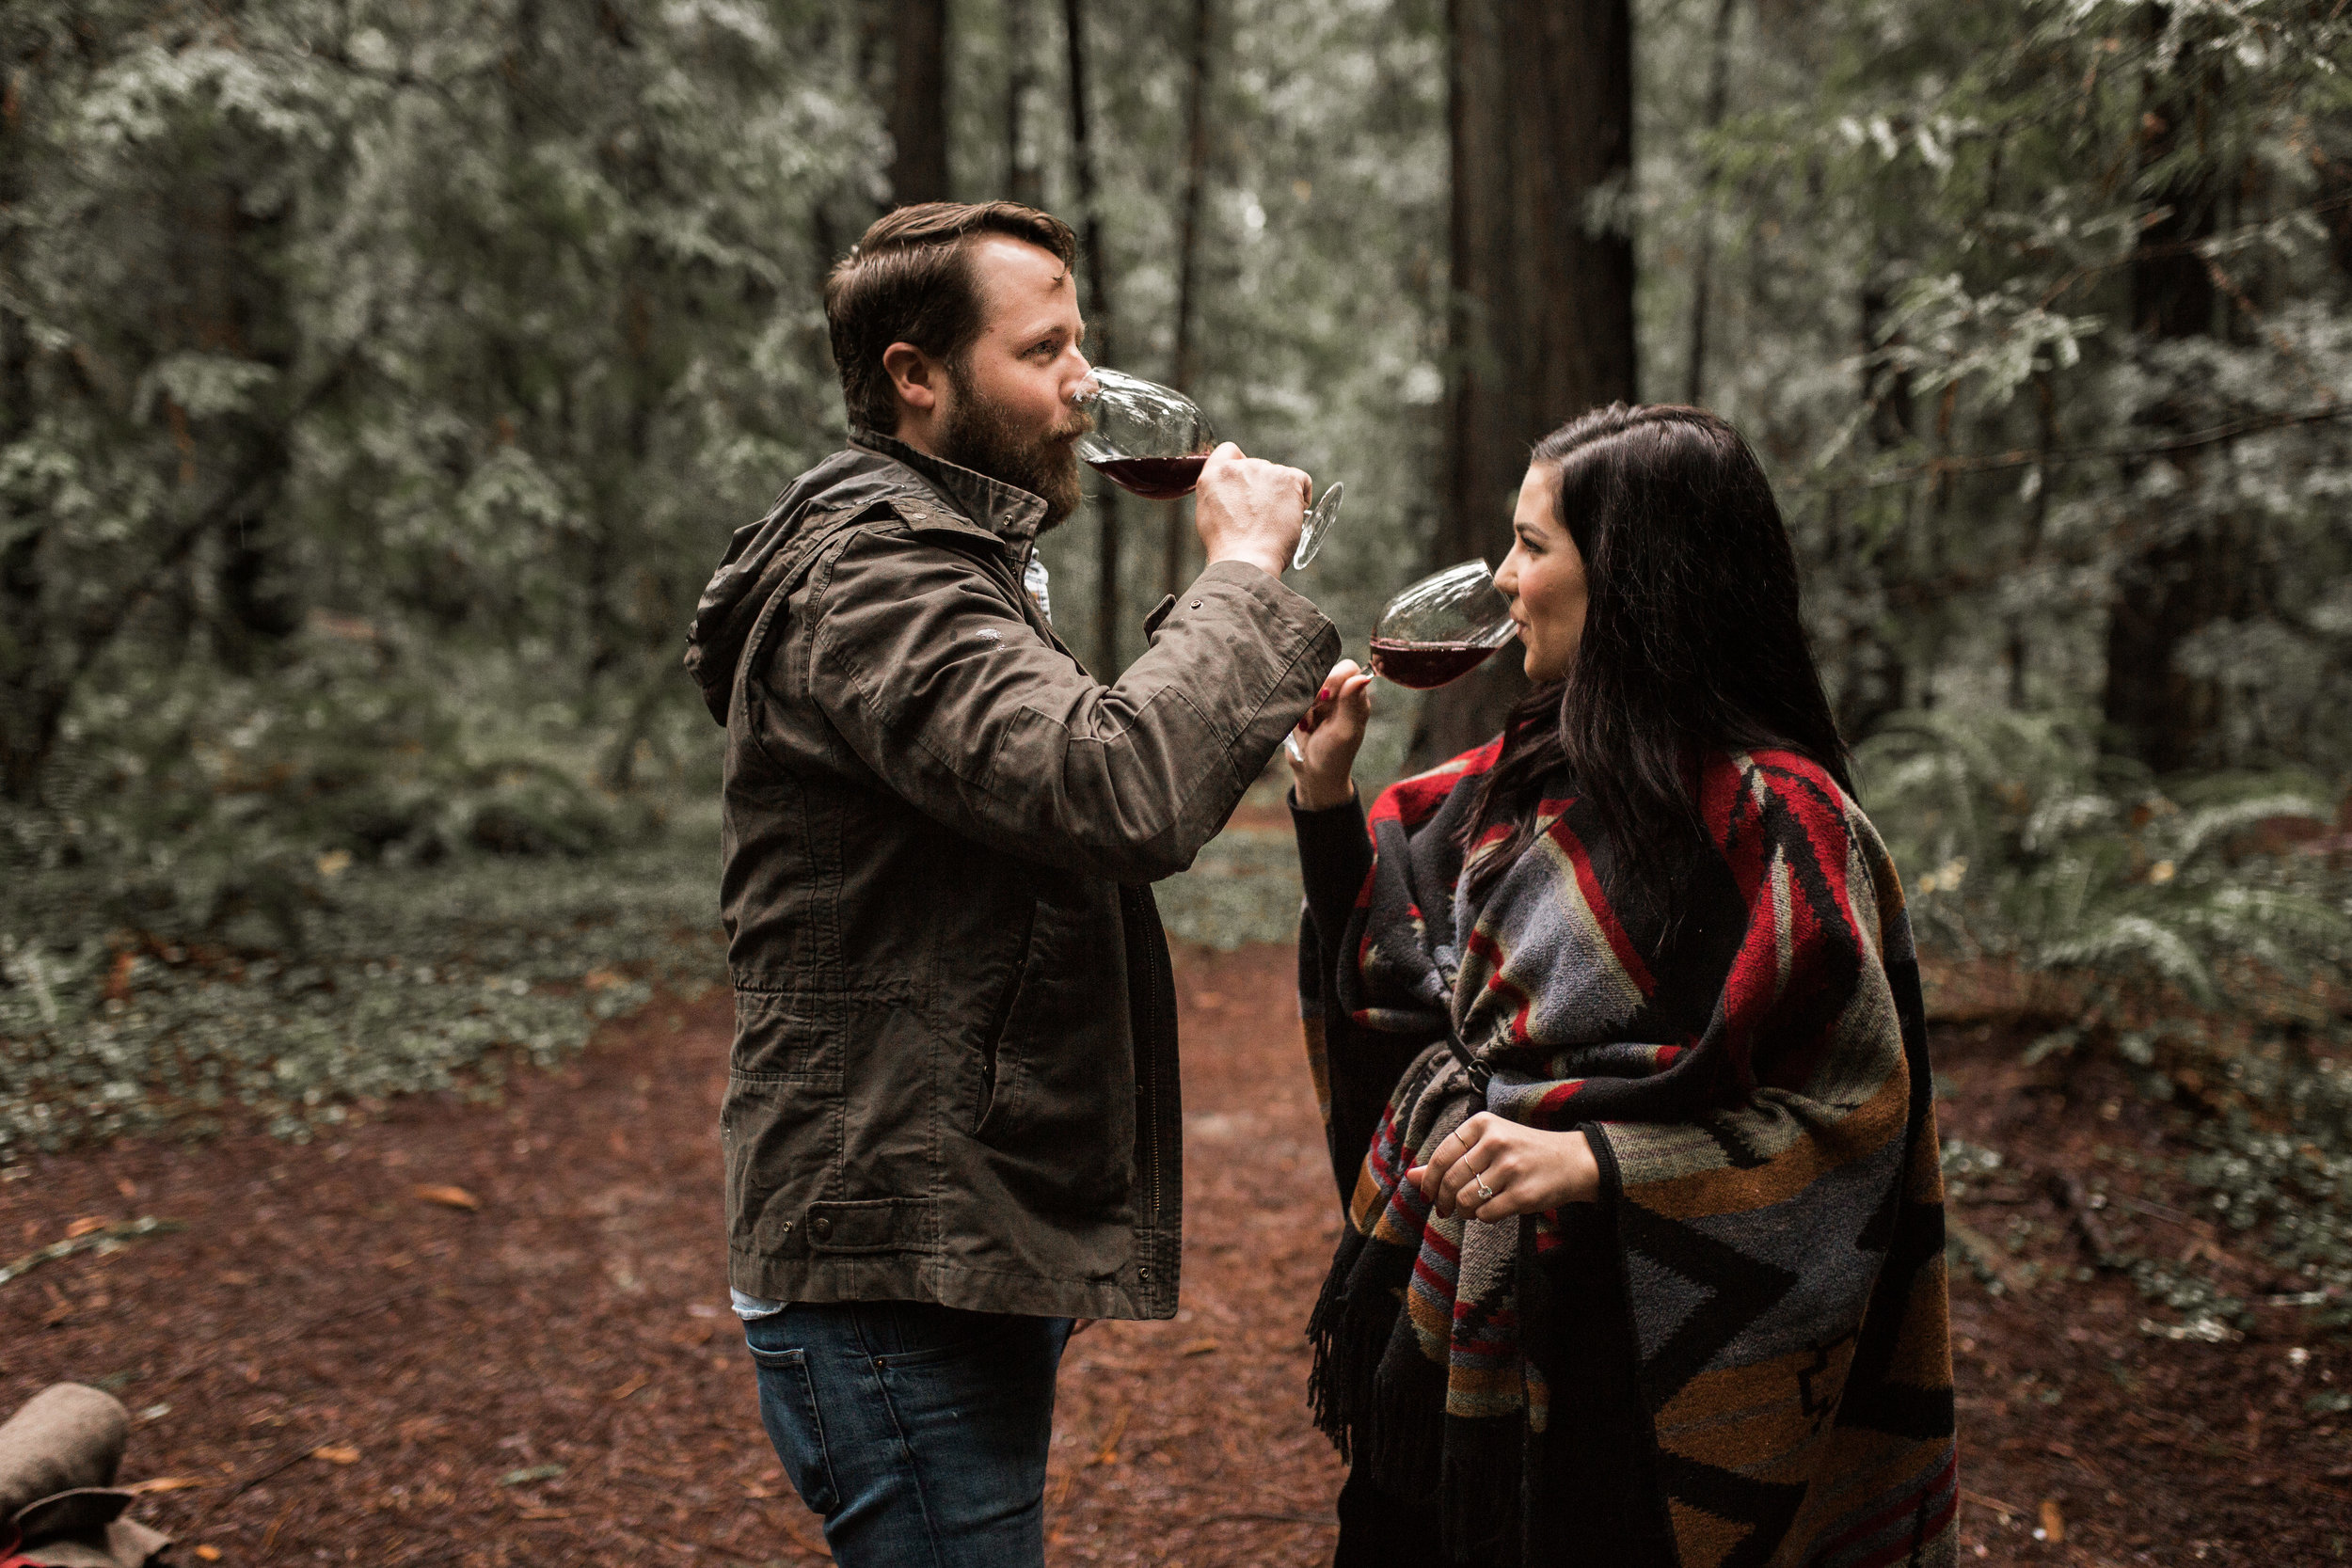 nicole-daacke-photography-redwoods-national-park-forest-rainy-foggy-adventure-engagement-session-humboldt-county-old-growth-redwood-tree-elopement-intimate-wedding-photographer-4.jpg